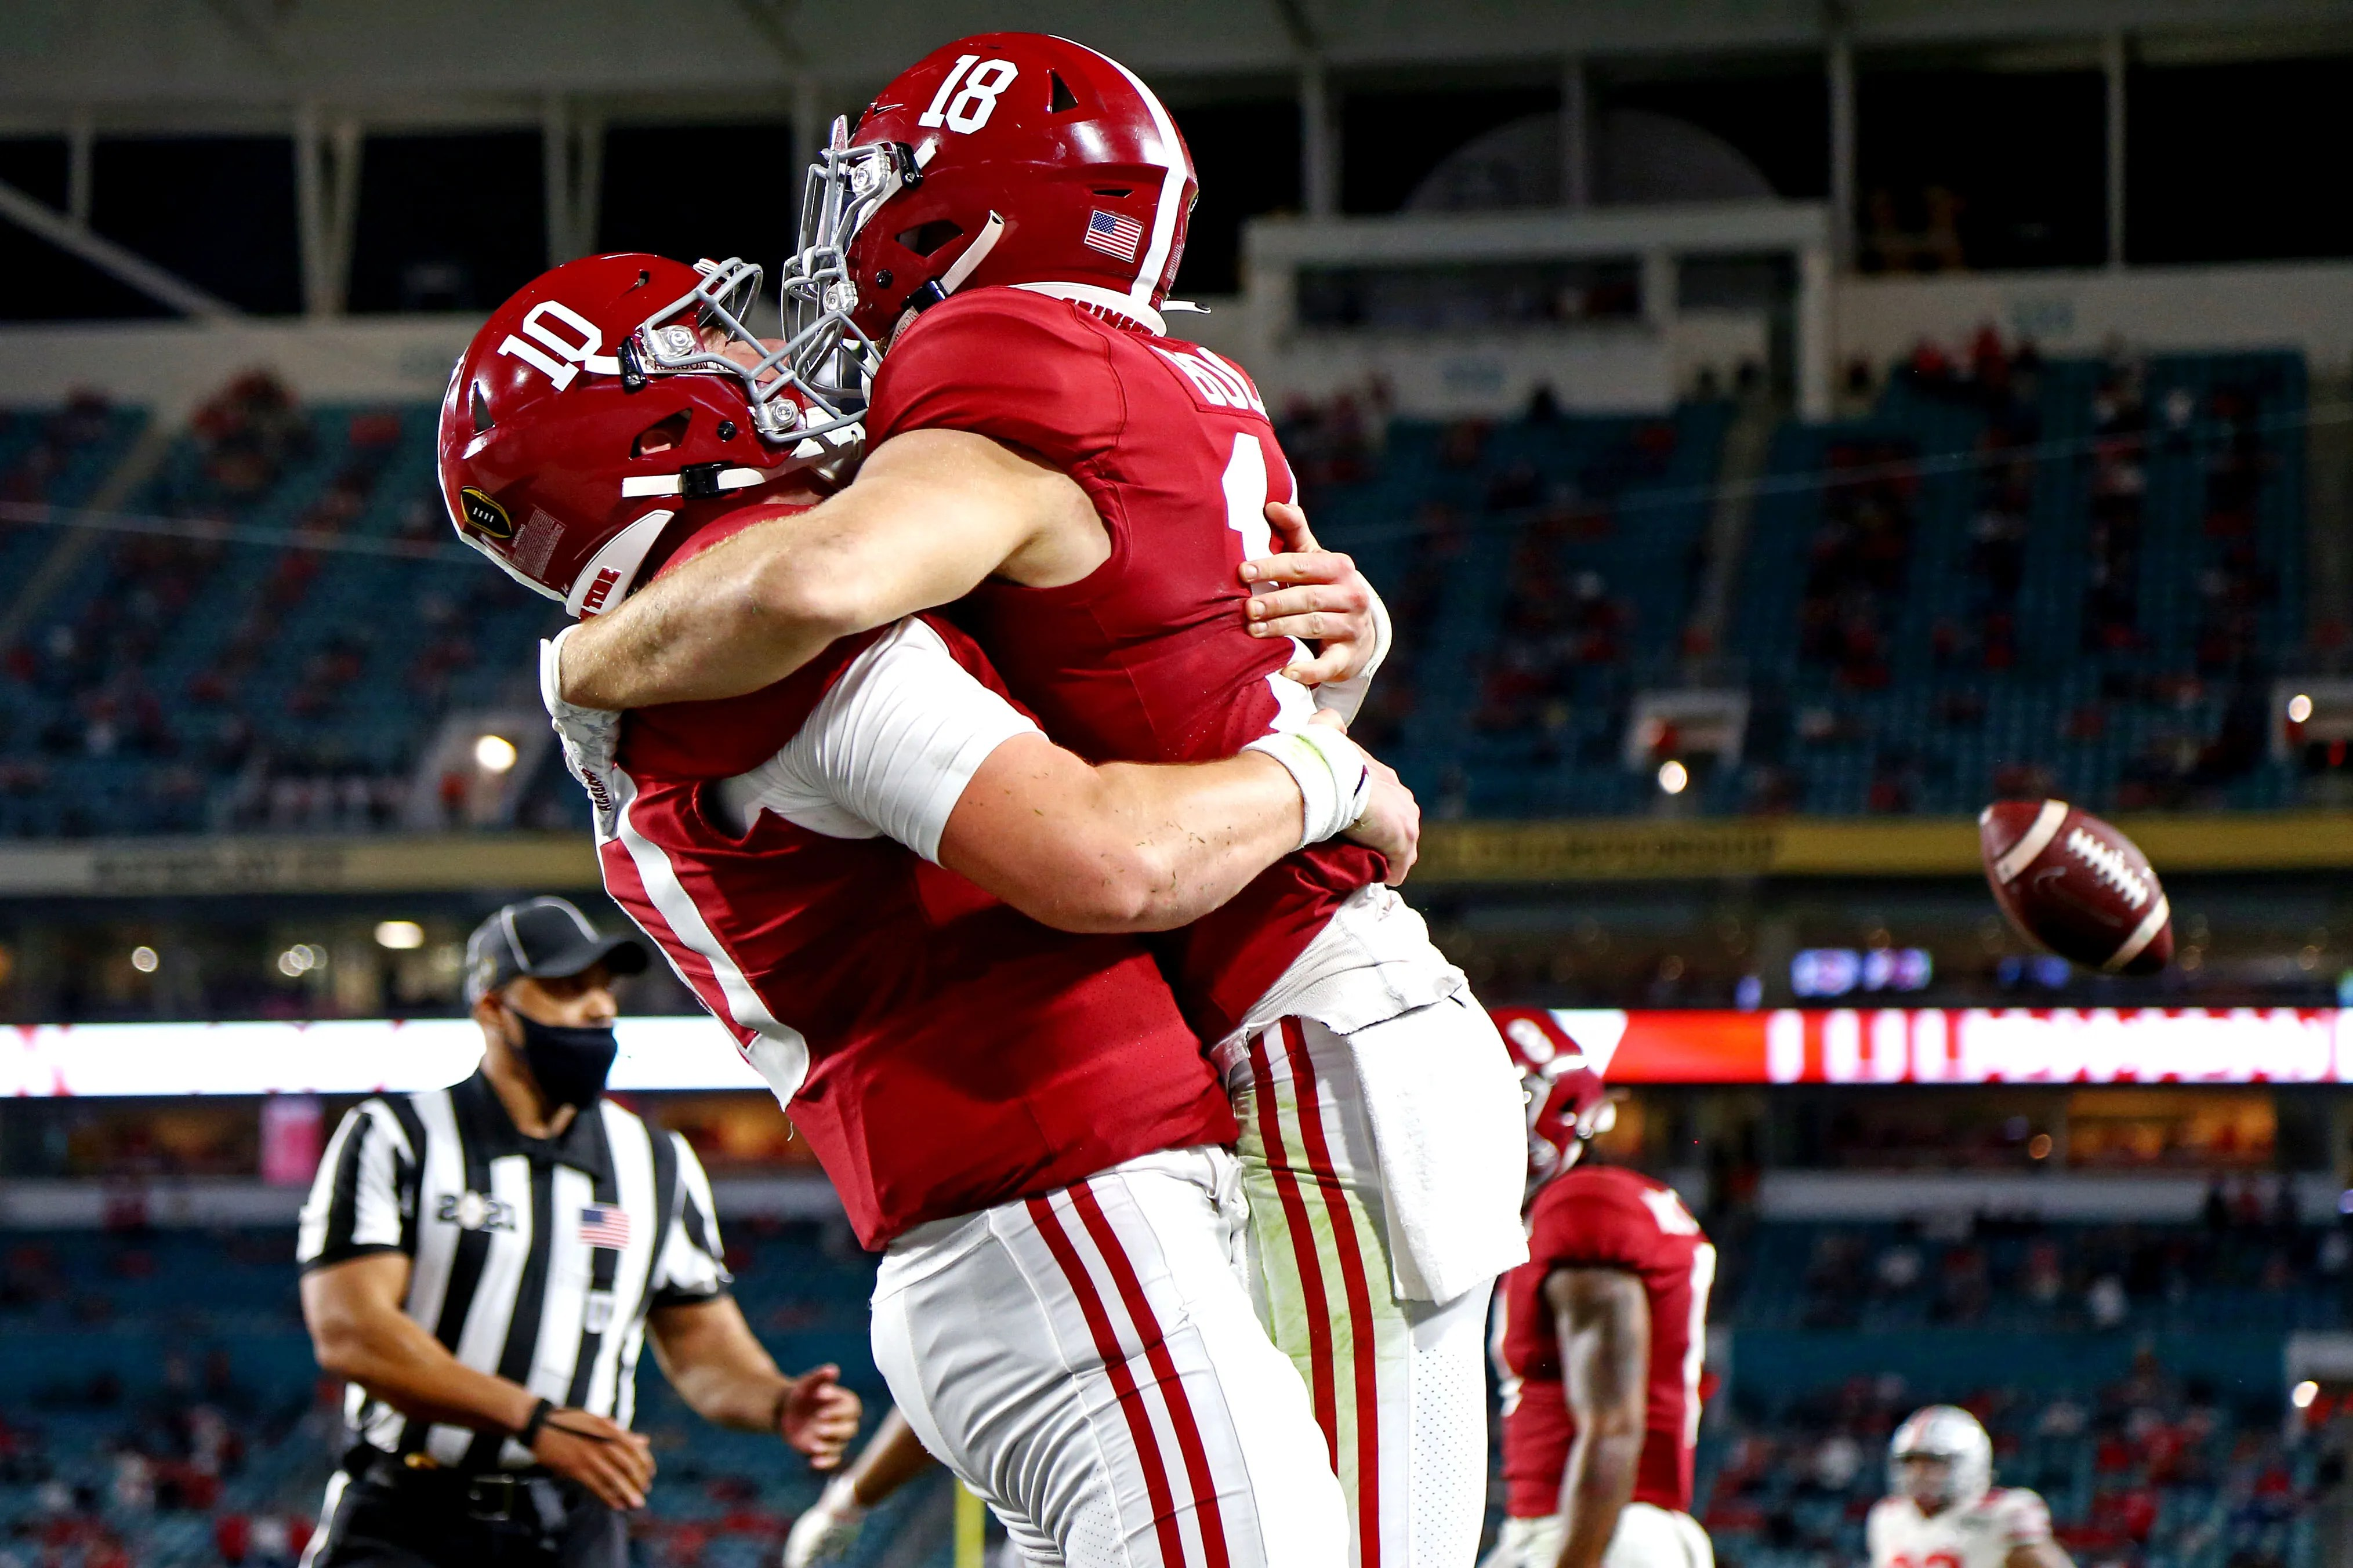 d851fbd6 87ec 4382 8729 6c013d7bae37 USATSI 15423227 Opinion: Nick Saban and Alabama appear untouchable after securing sixth national title